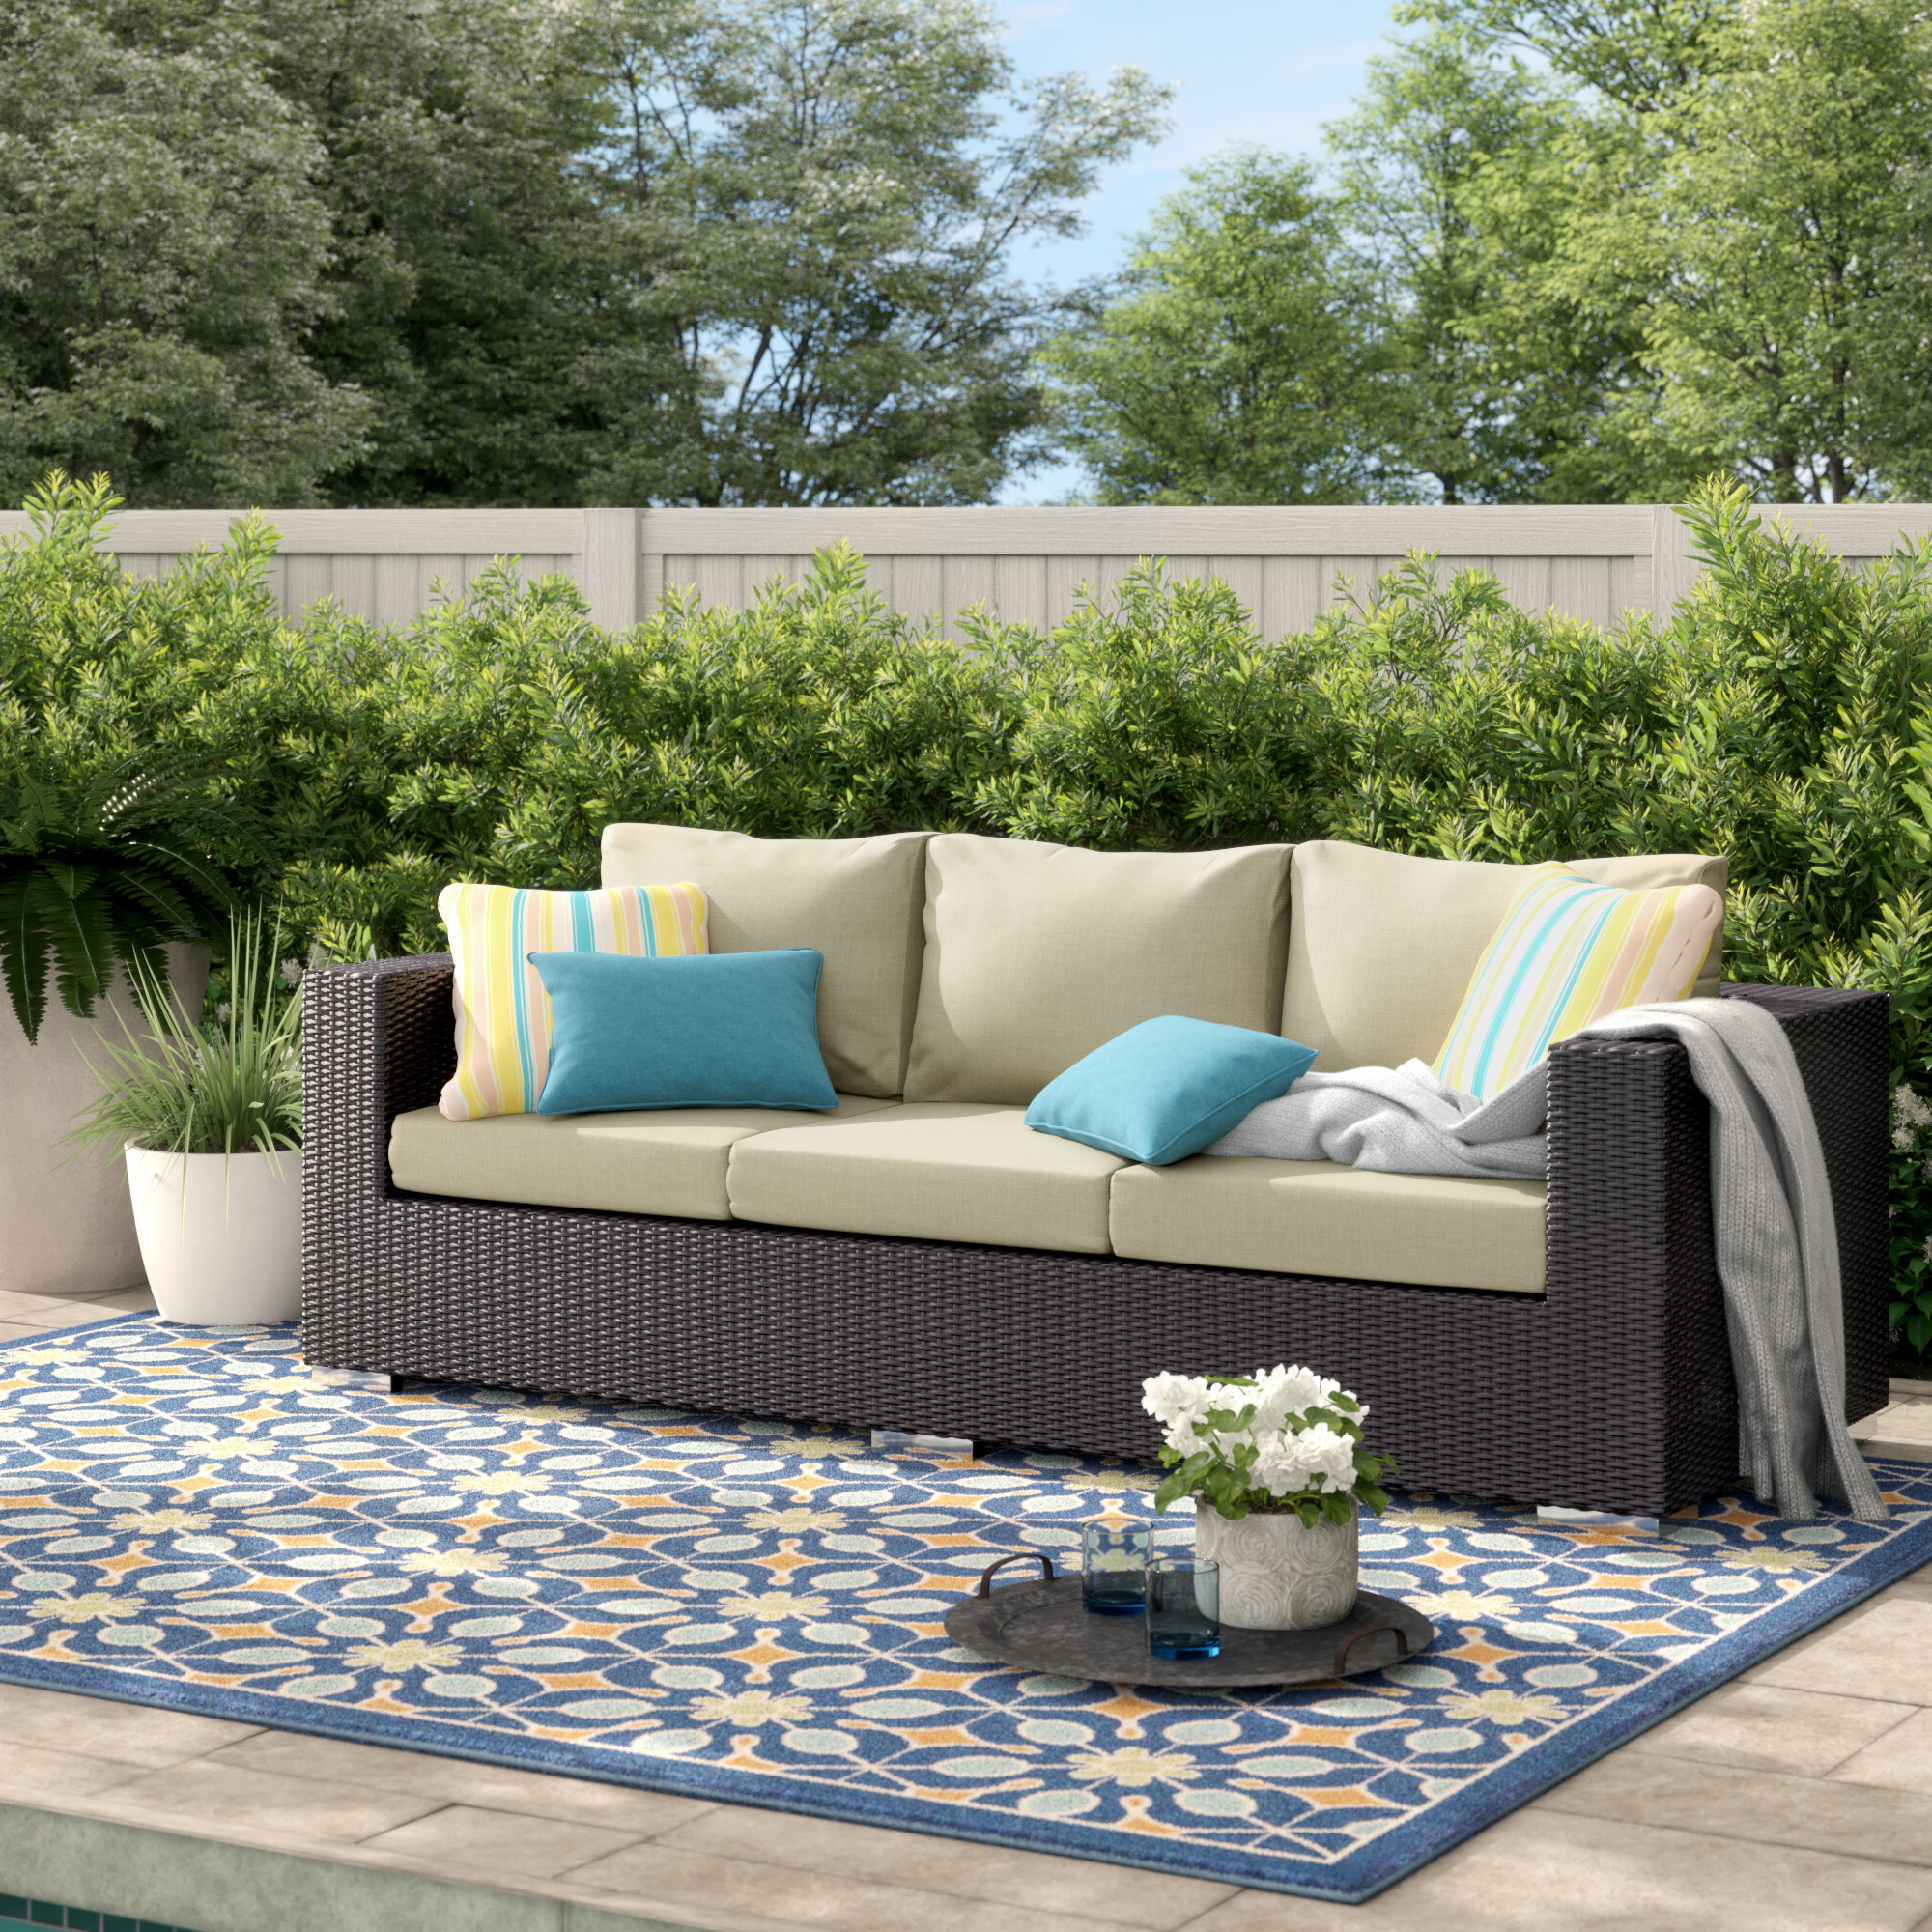 Popular Silloth Patio Sofas With Cushions Within Small Outdoor Sofa (View 9 of 20)